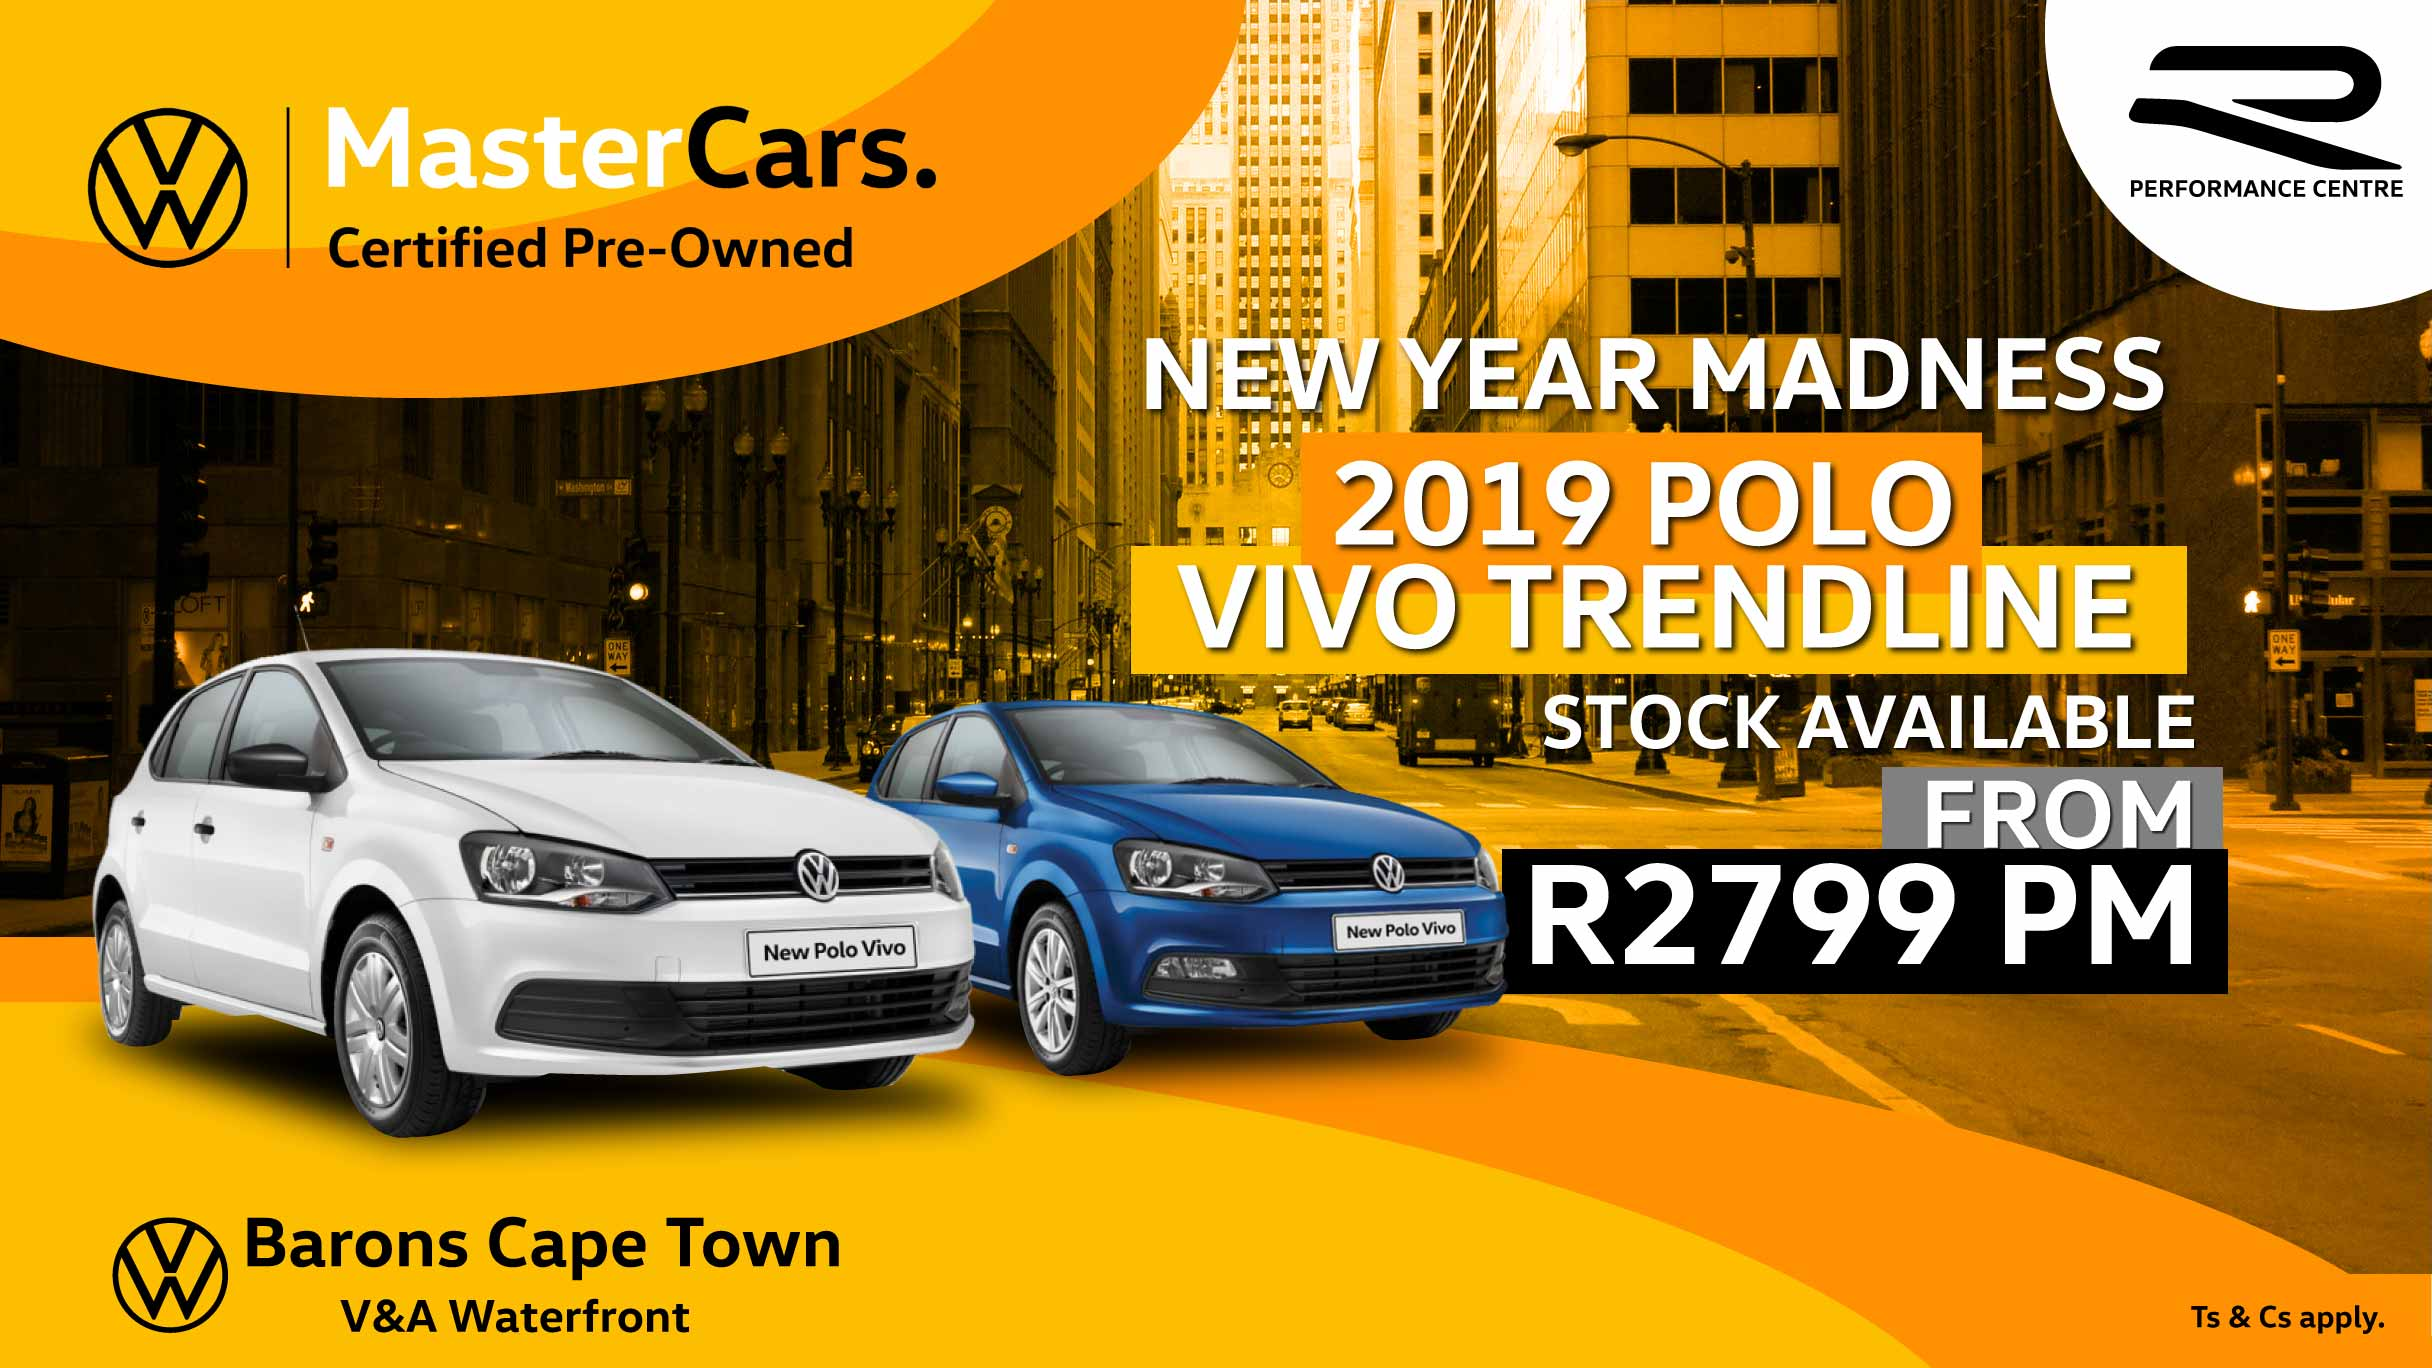 Polo Vivo MasterCars offers at Barons Cape Town